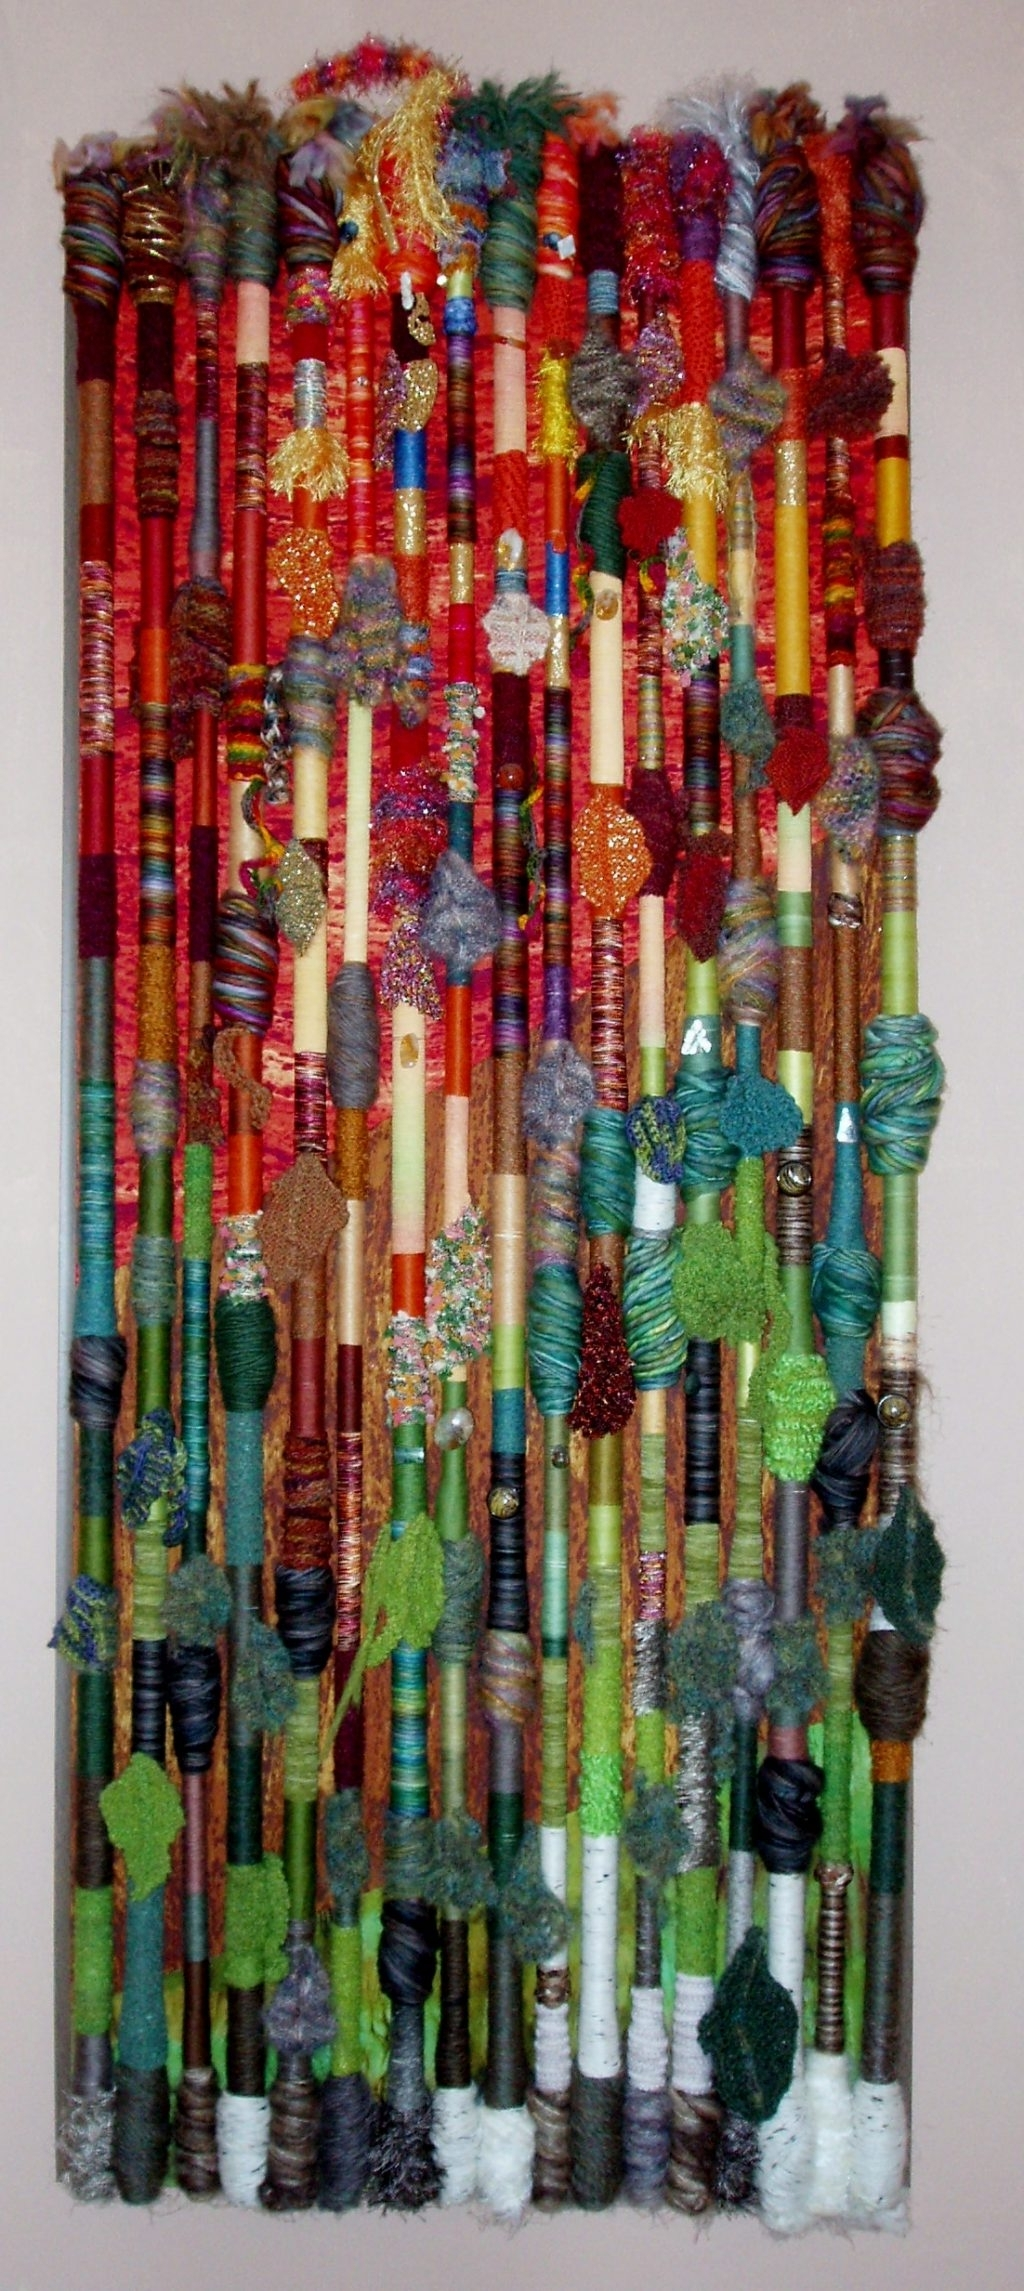 Hanging Textile Wall Art Regarding Favorite Inspirational Design Ideas Textile Wall Hangings With Fiber Art (View 6 of 15)